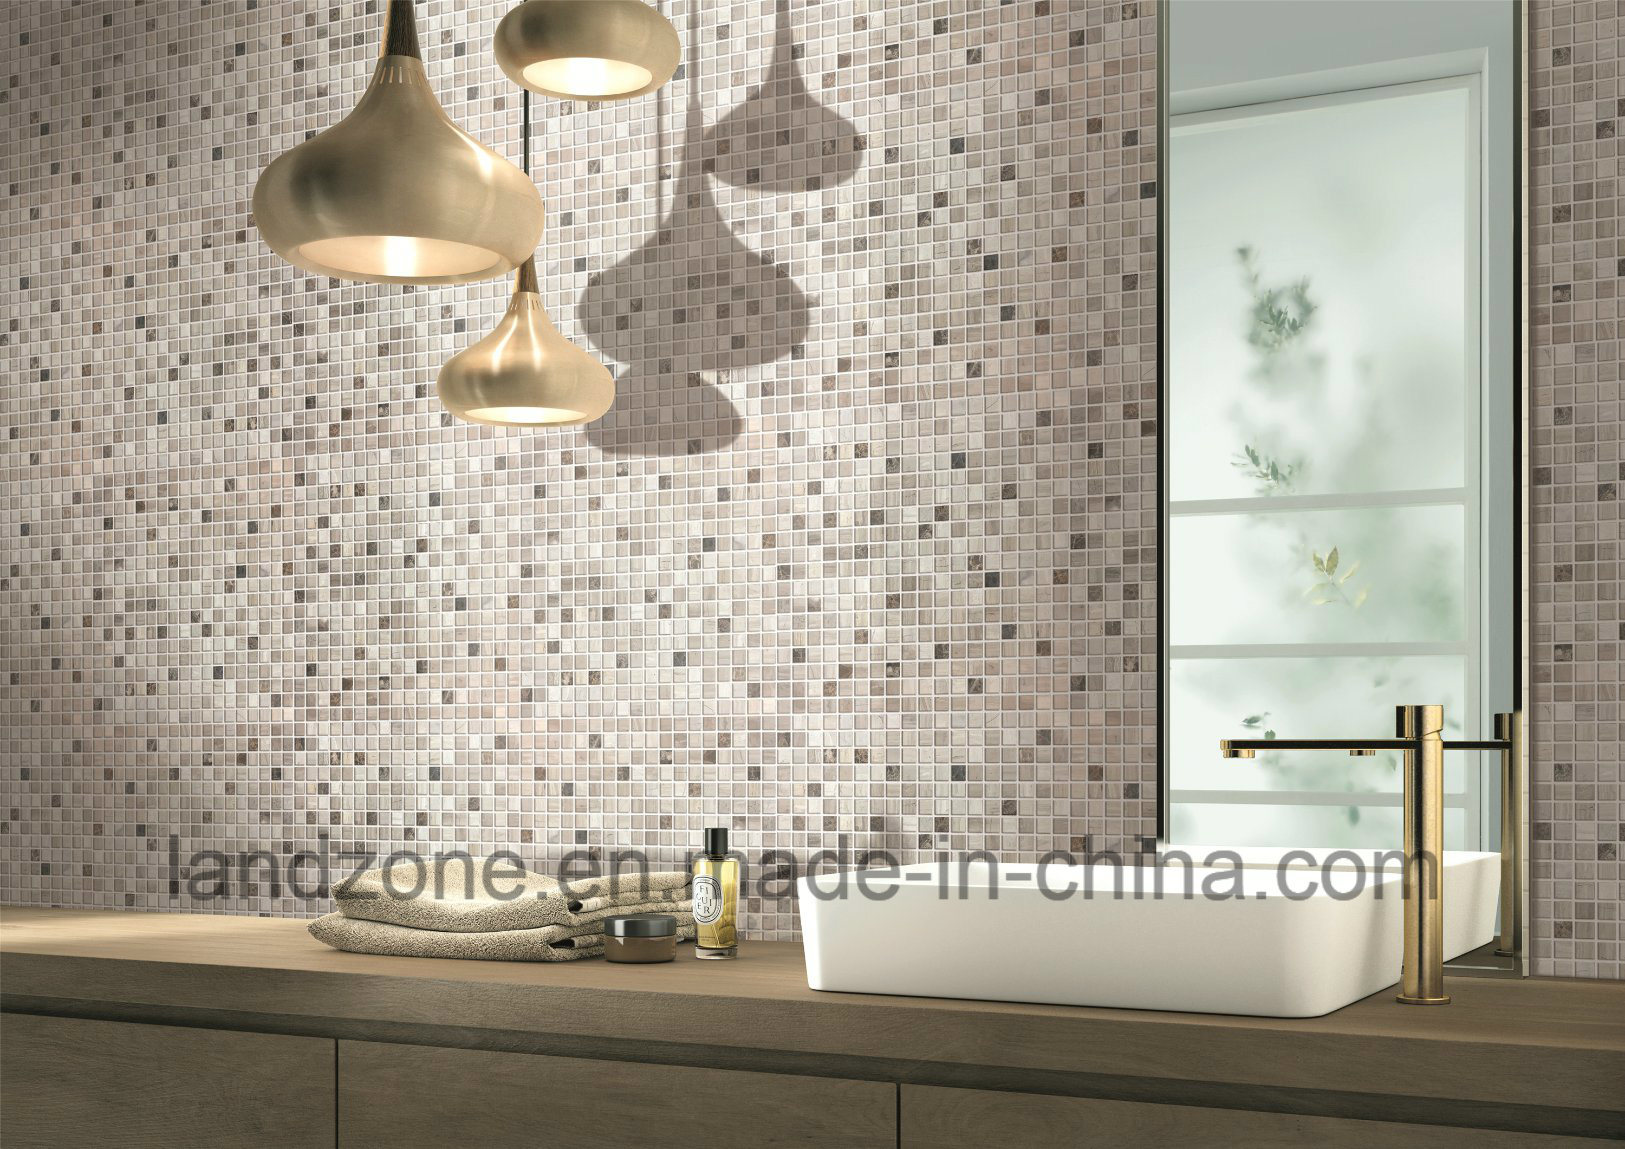 Wholesale Square Tile - Buy Reliable Square Tile from Square Tile ...